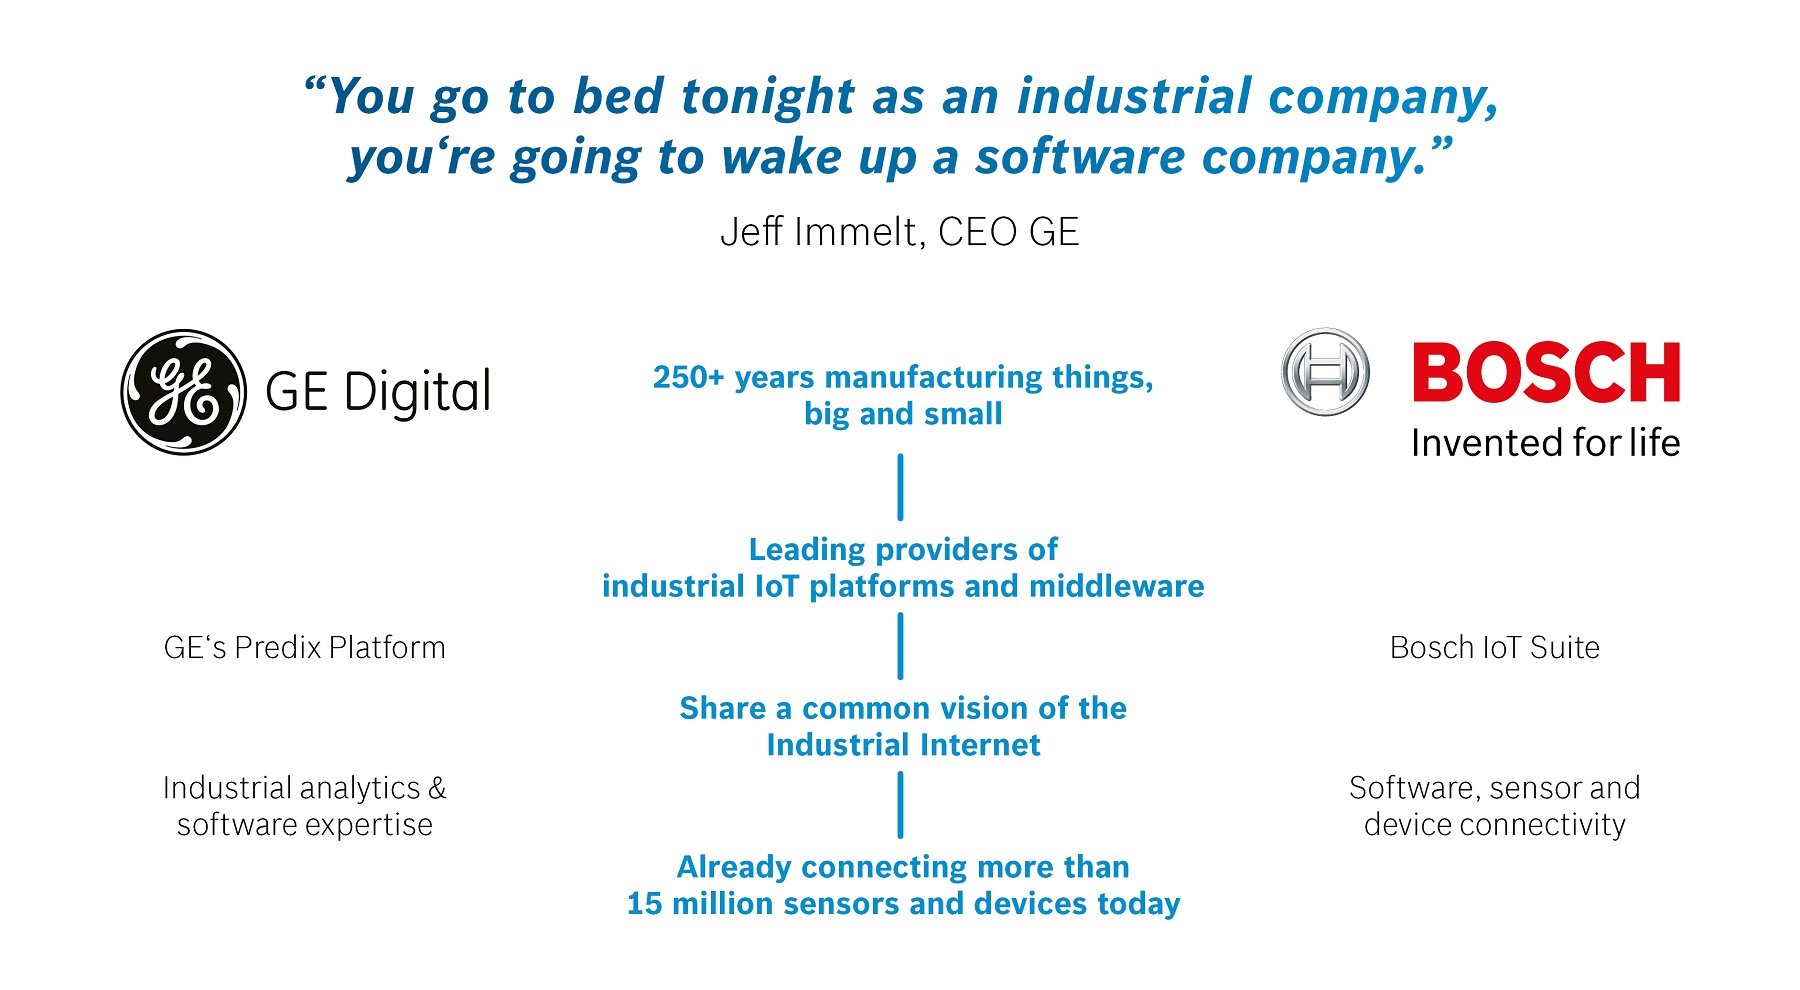 Industrial IoT leaders work towards interoperability & open source TechNative